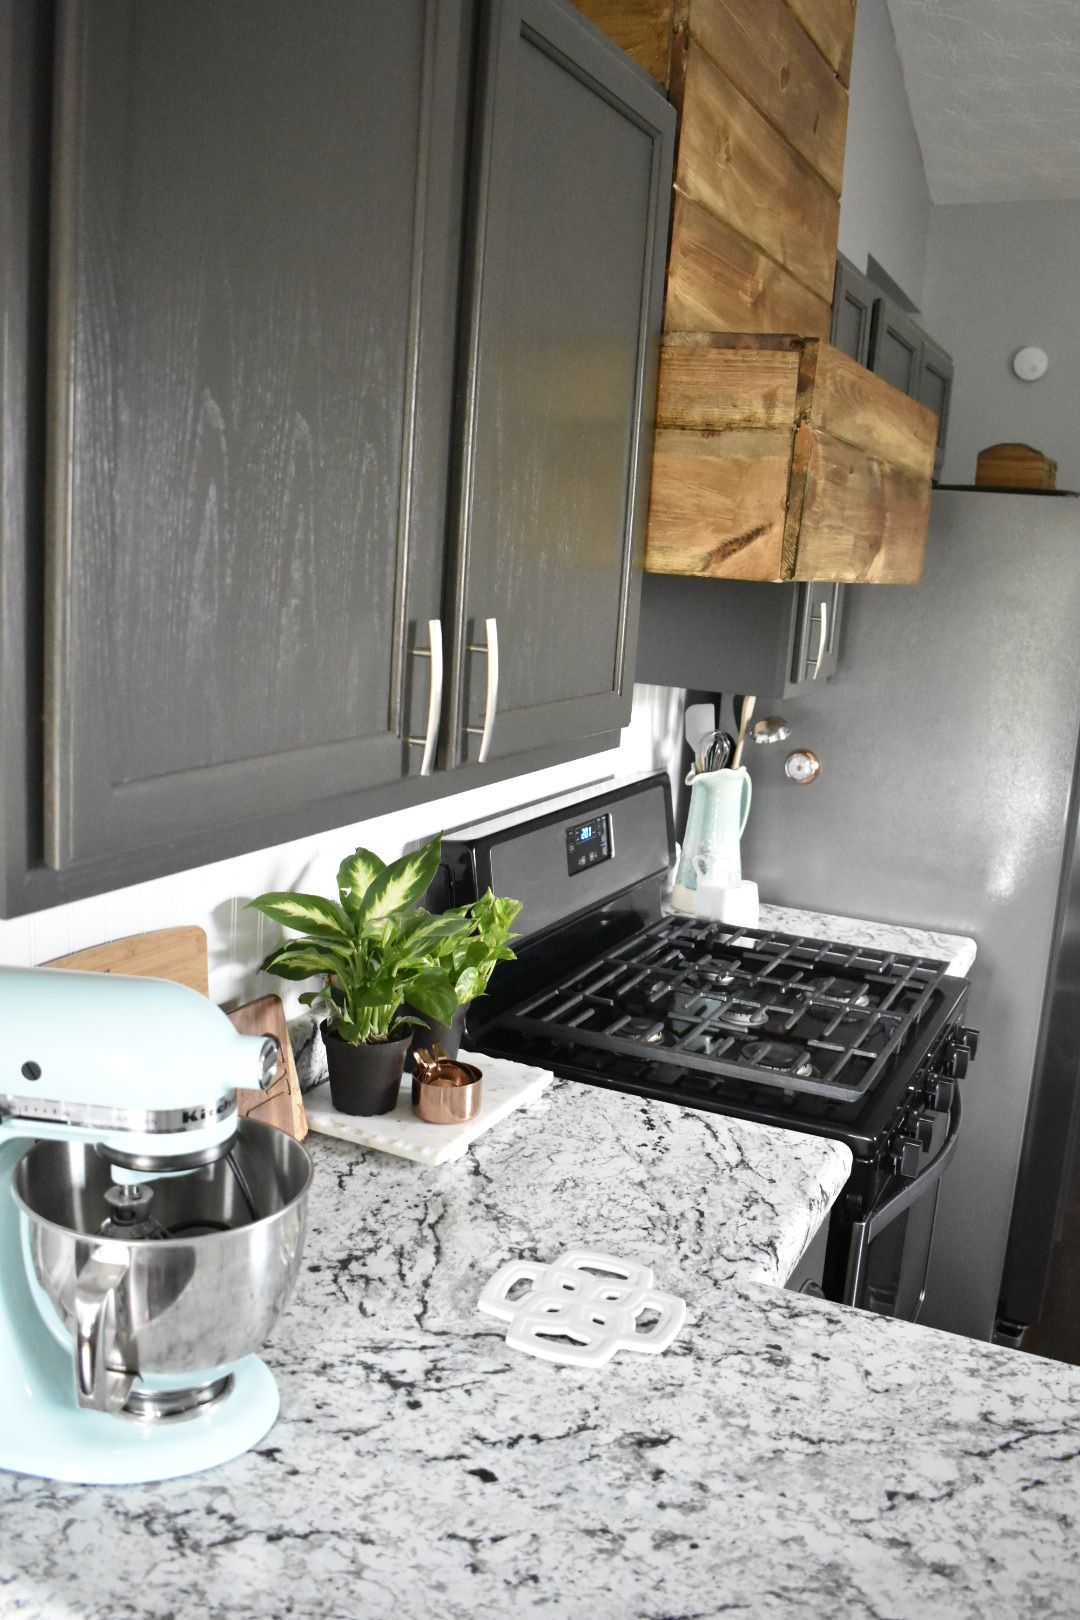 Modern Farmhouse Kitchen Rustic Accents With A Neutral Base White Ice Formica L Farmhouse Kitchen Countertops Laminate Countertops White Laminate Countertops